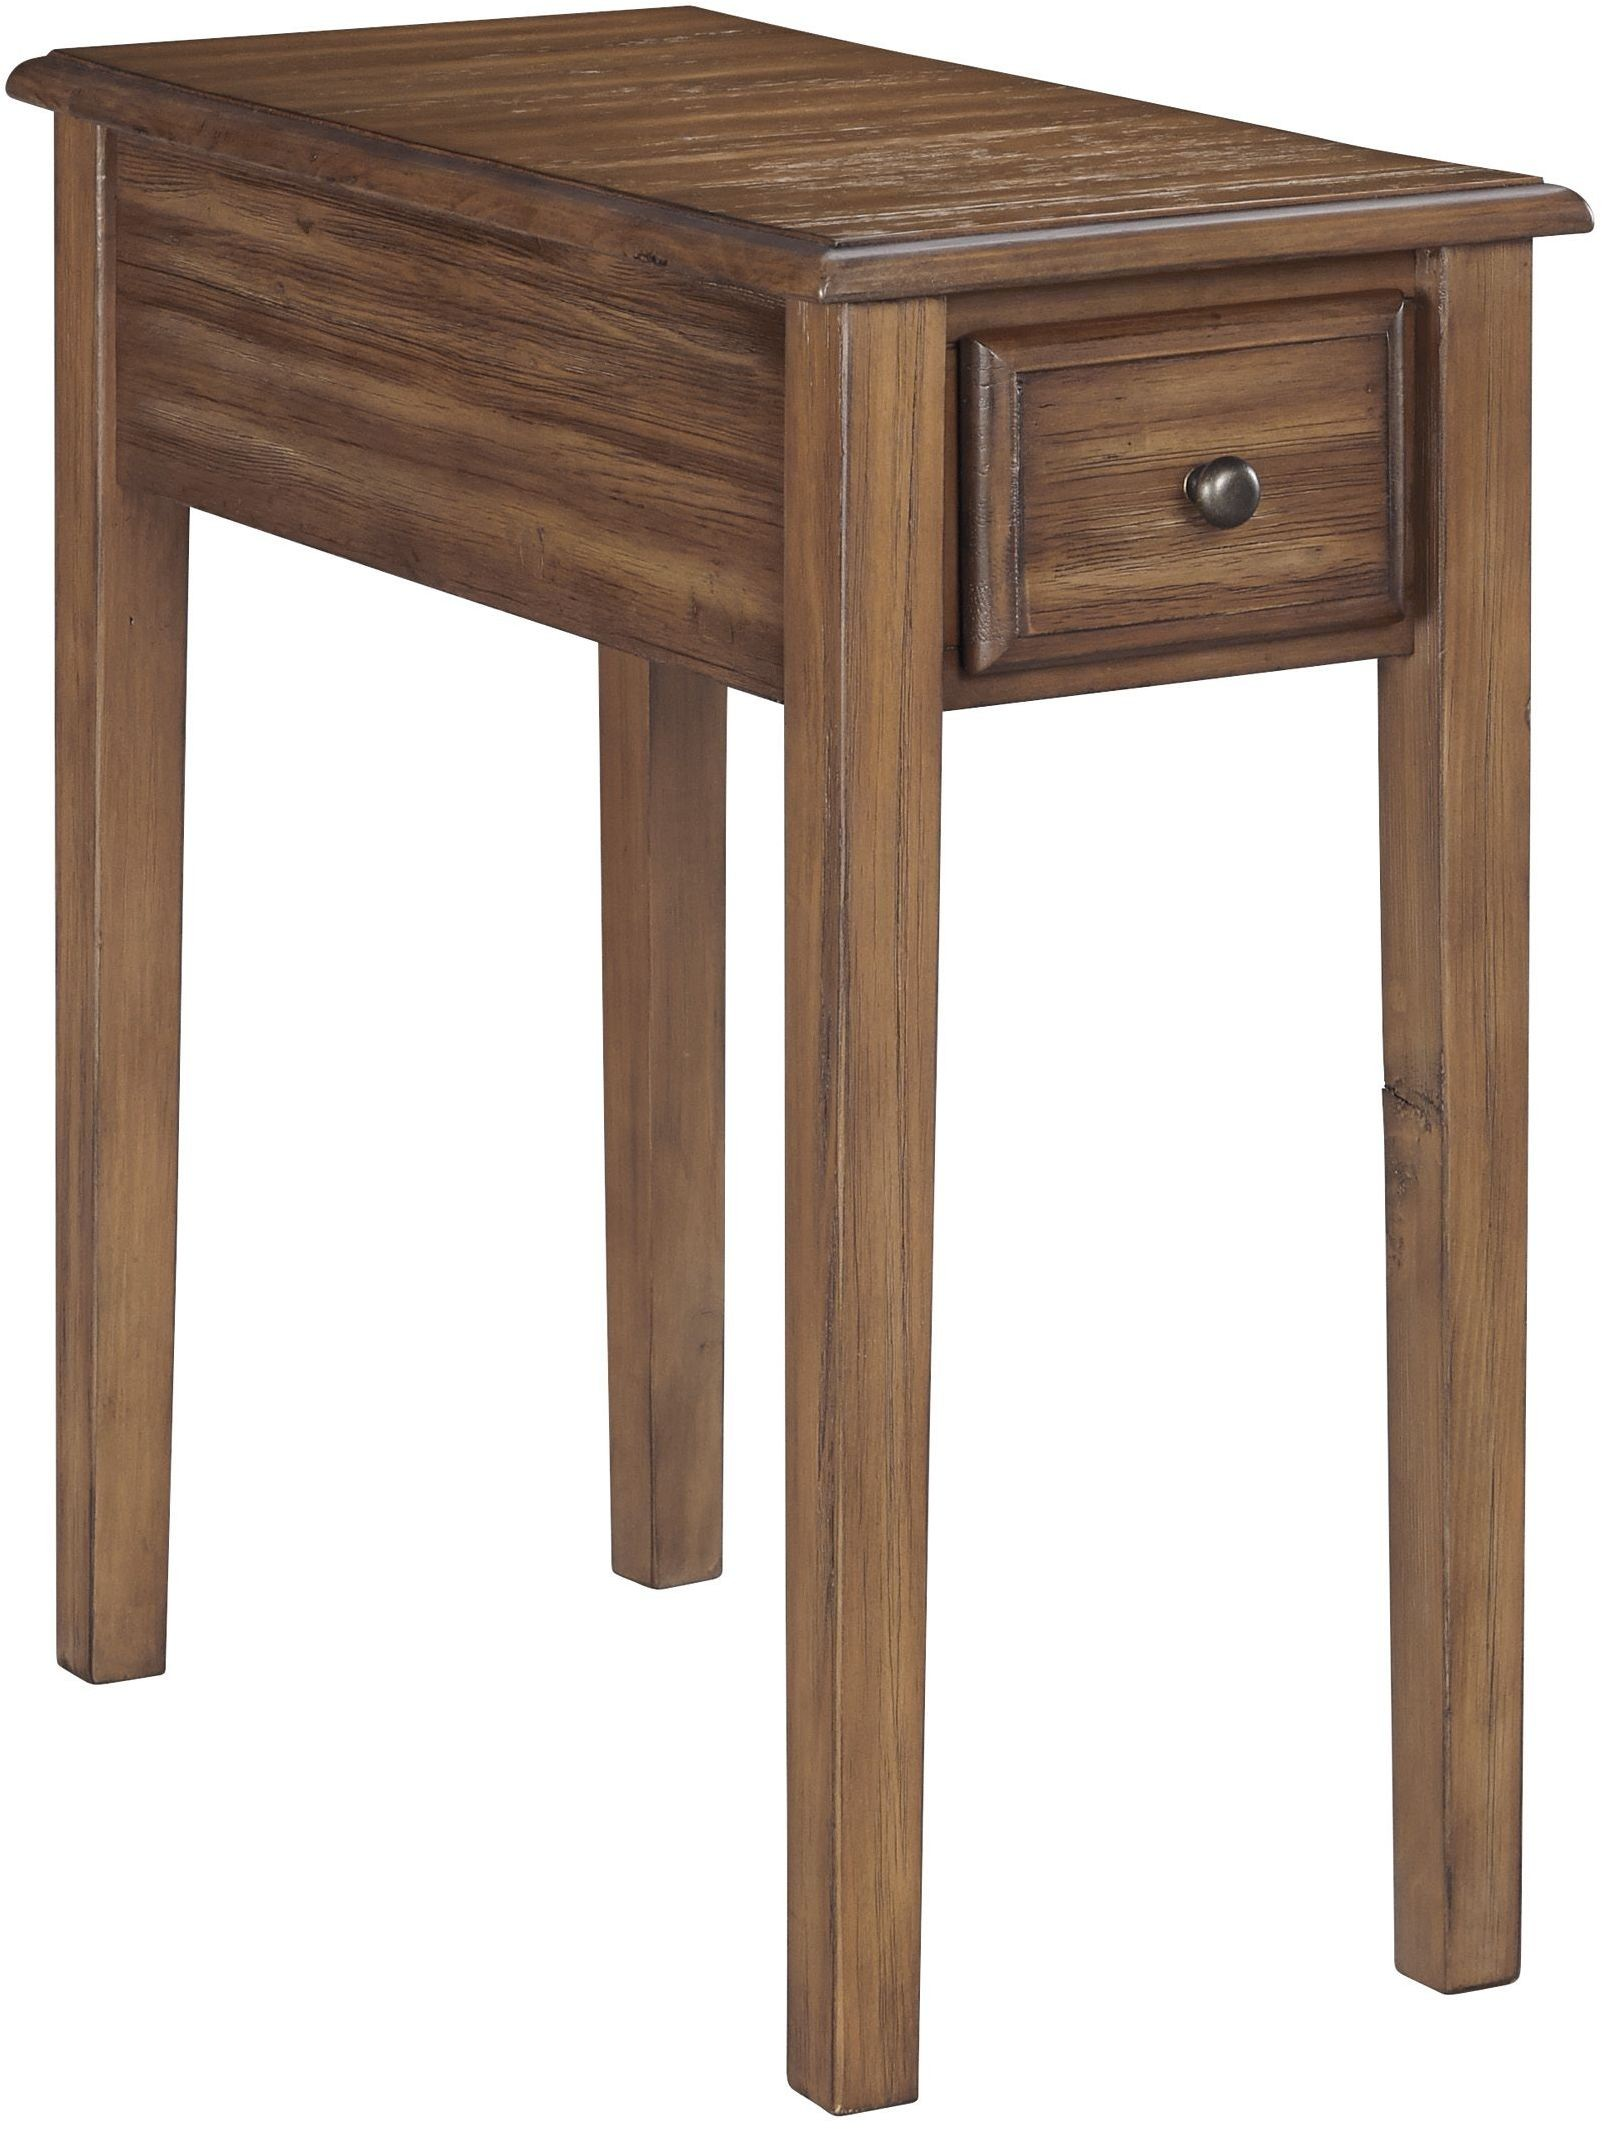 side table for recliner chair black spandex covers rental warm brown end from ashley coleman